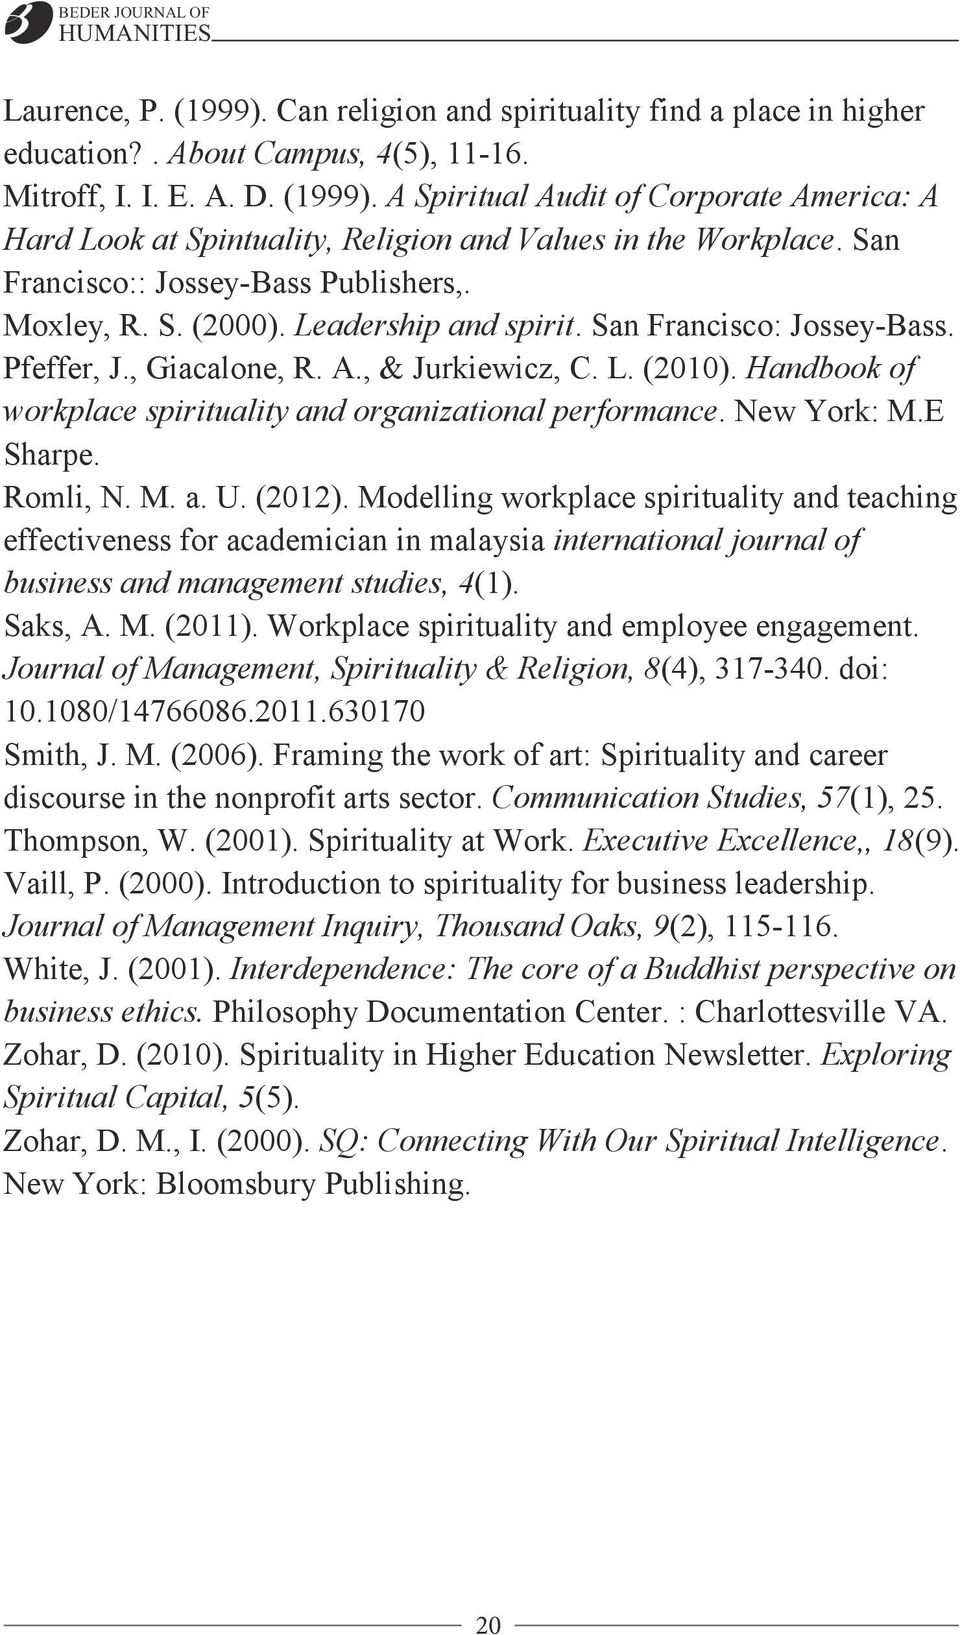 Handbook of workplace spirituality and organizational performance. New York: M.E Sharpe. Romli, N. M. a. U. (2012).